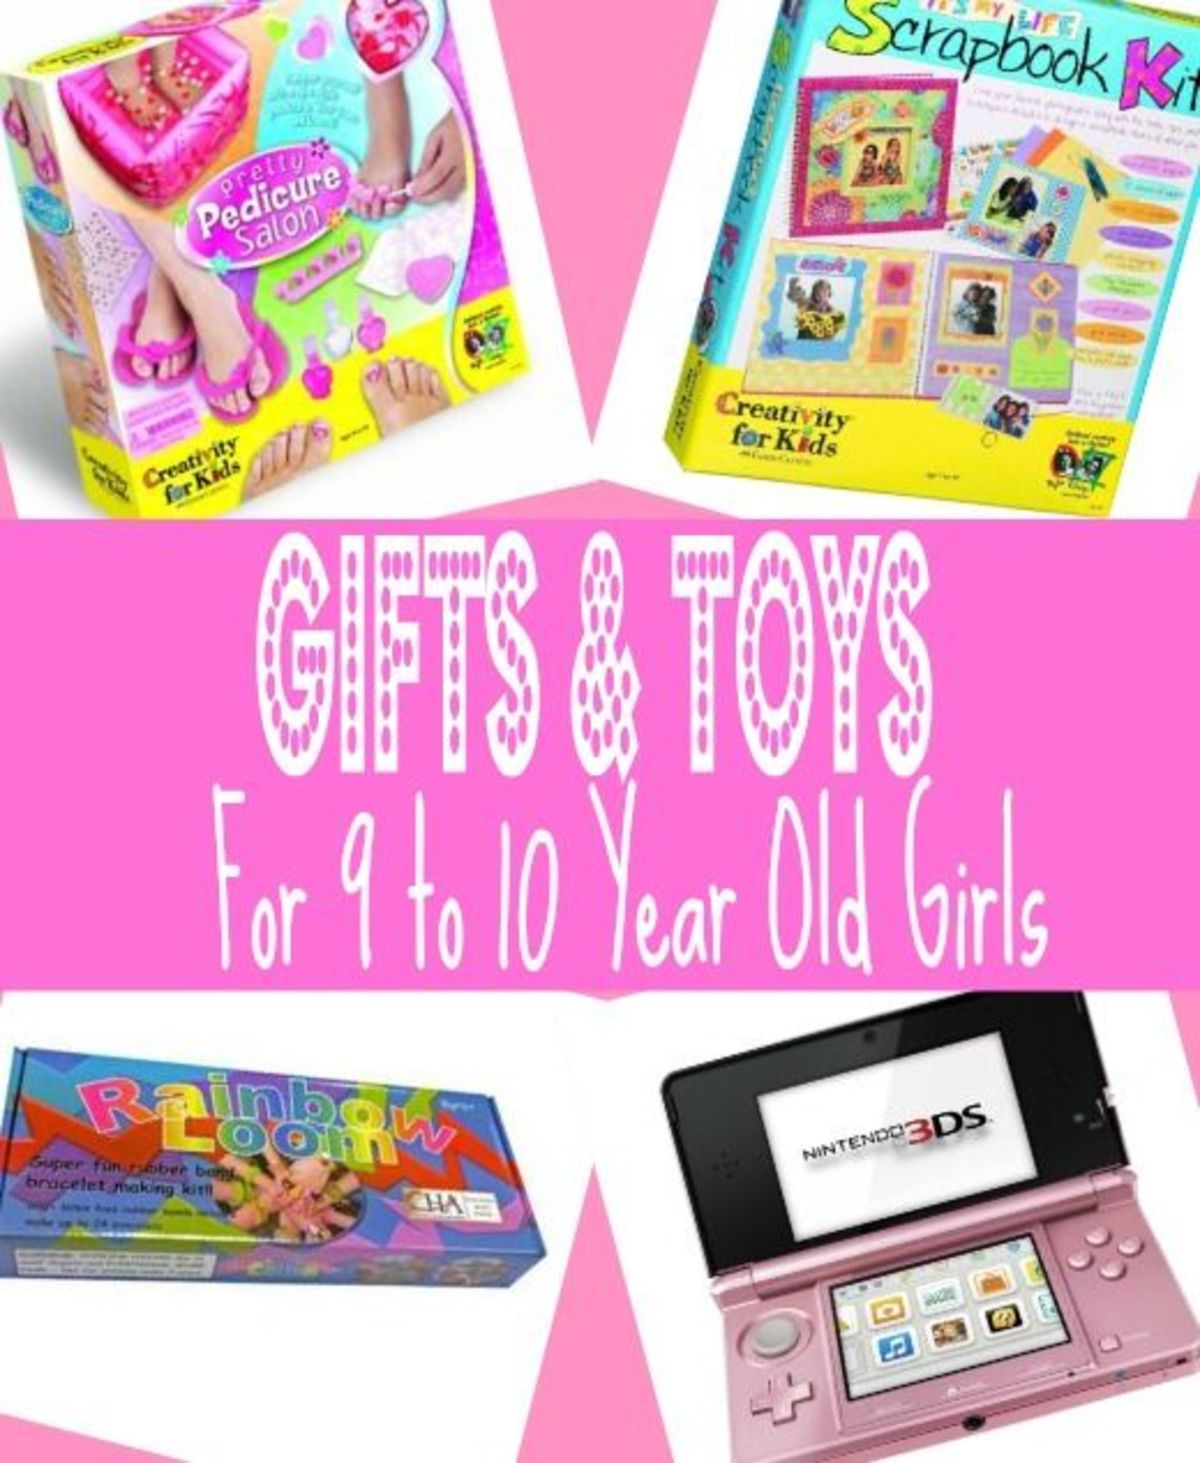 Christmas Gift Ideas For A Nine Year Girl - rjmovers.com